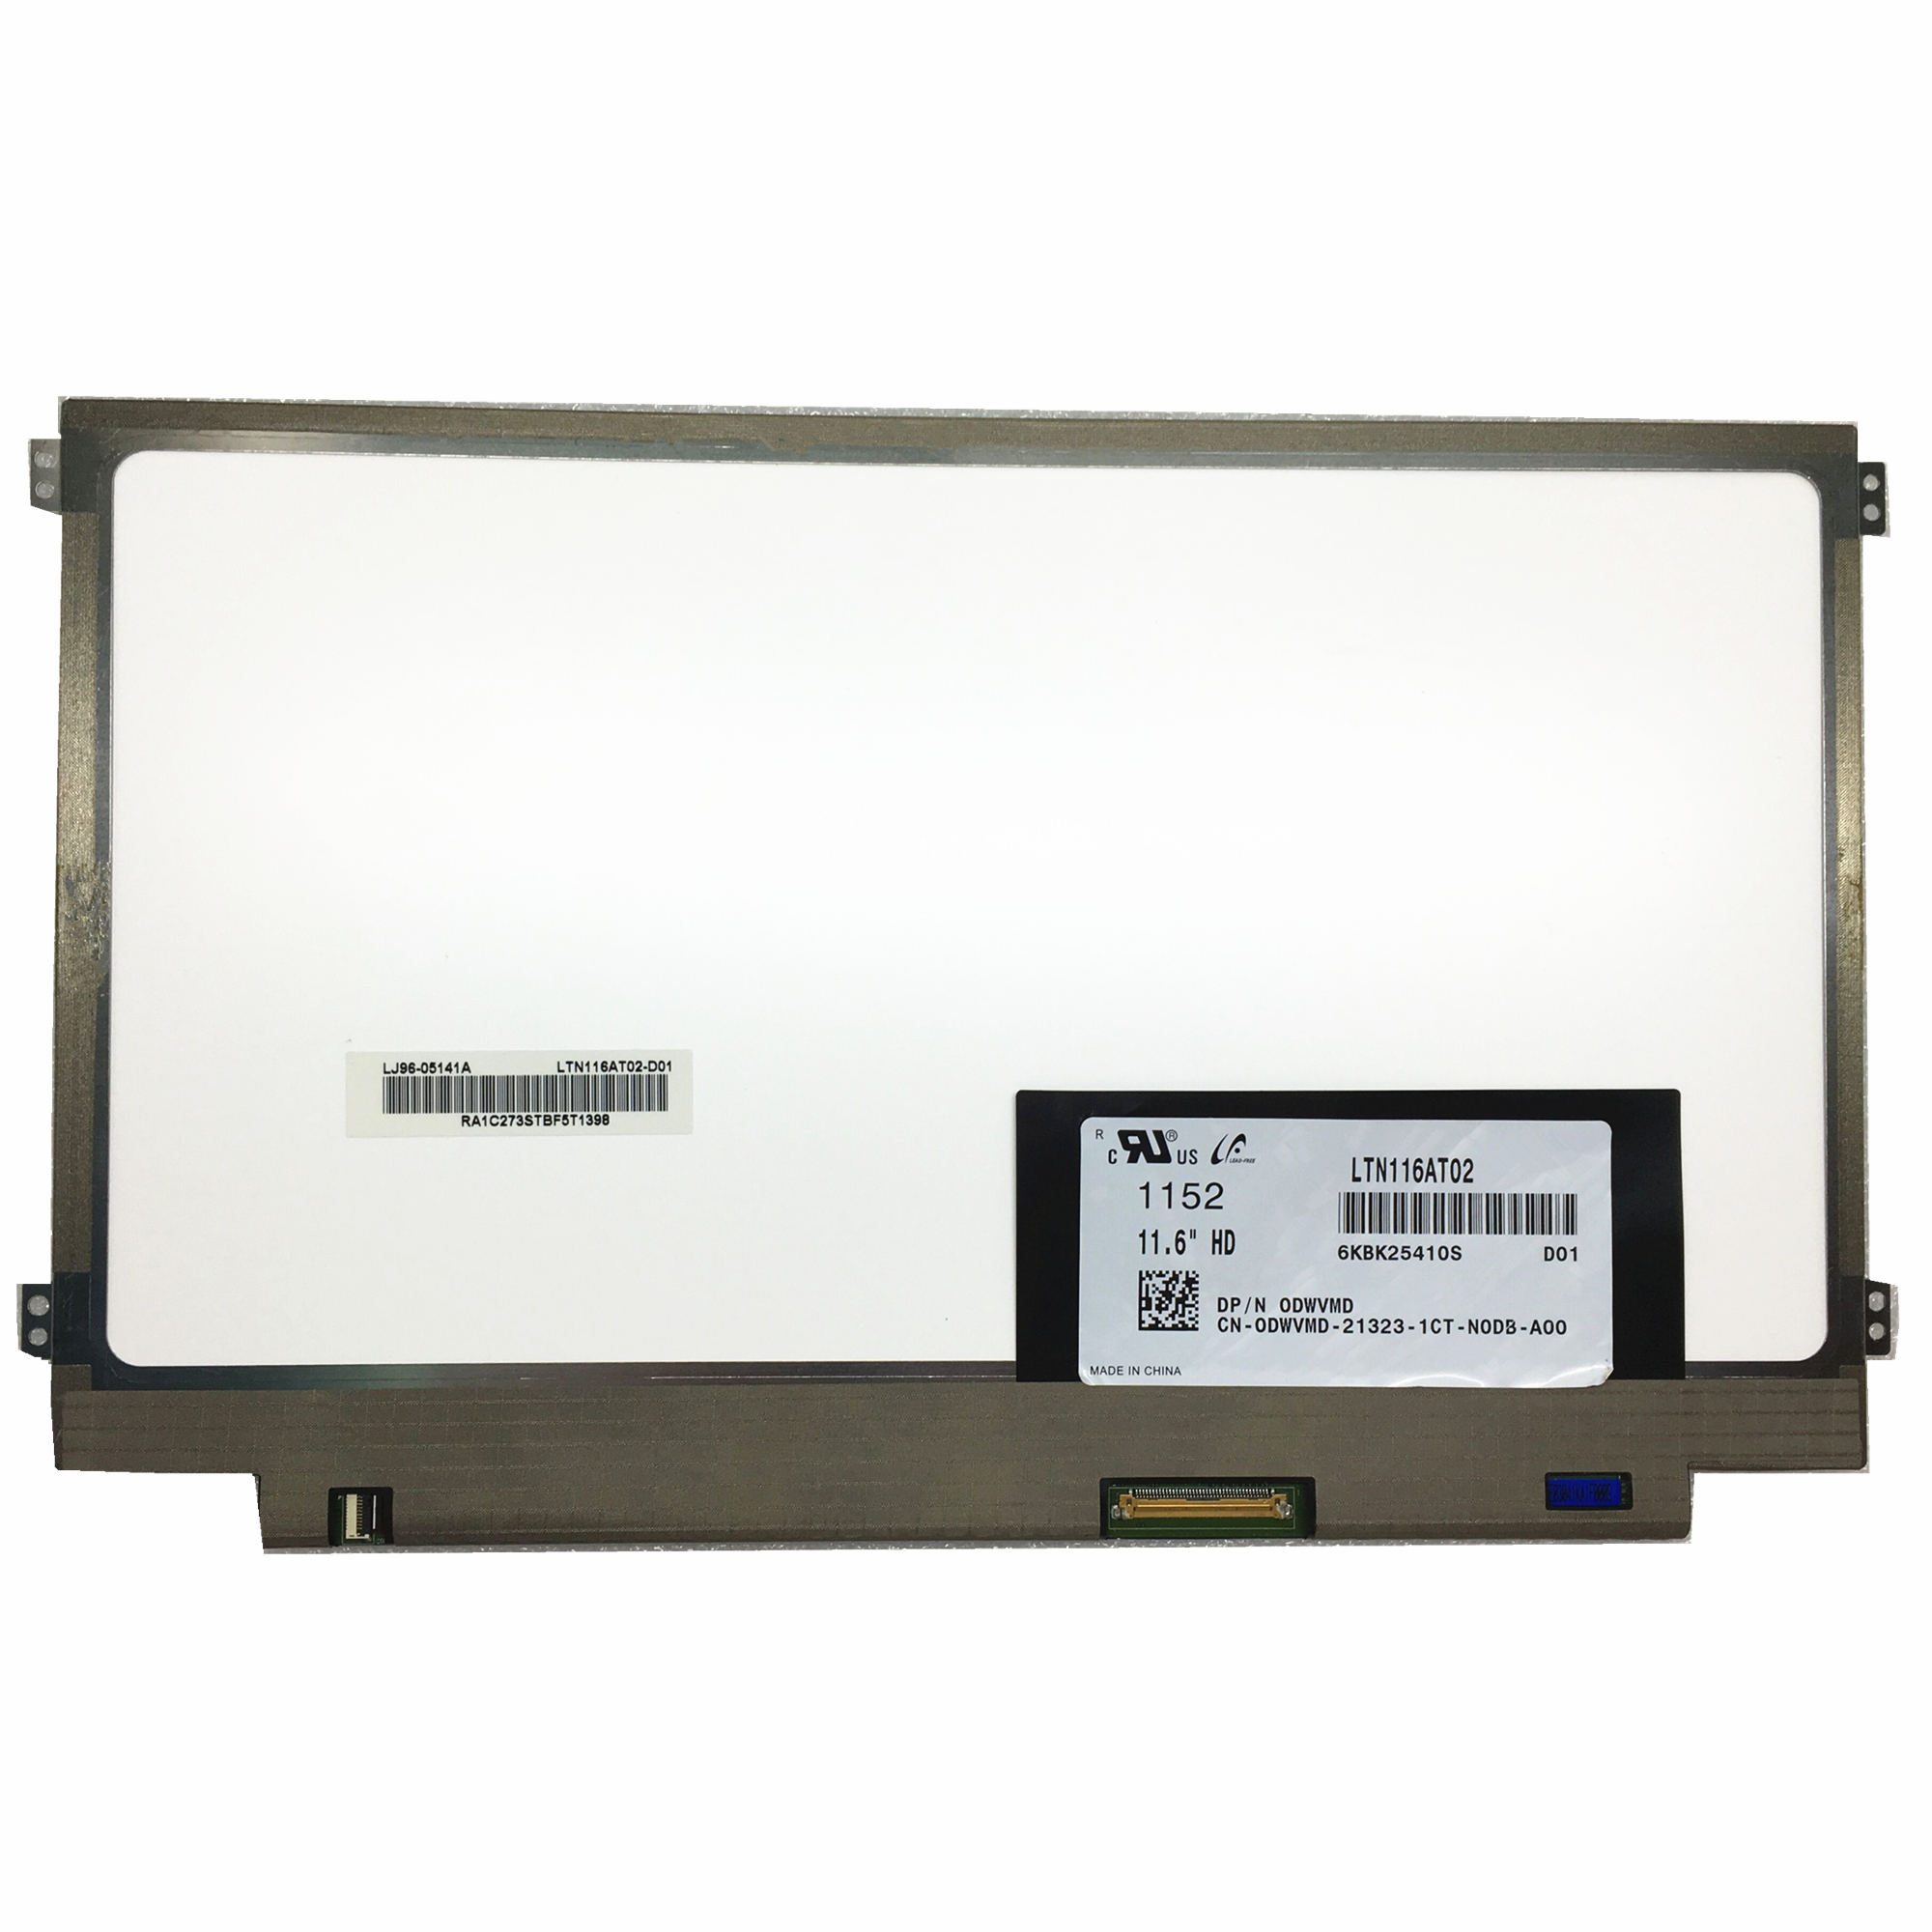 Free shipping LTN116AT02 D01 LTN116AT02 D01 only fit for original model Laptop Lcd Screen 1366 768